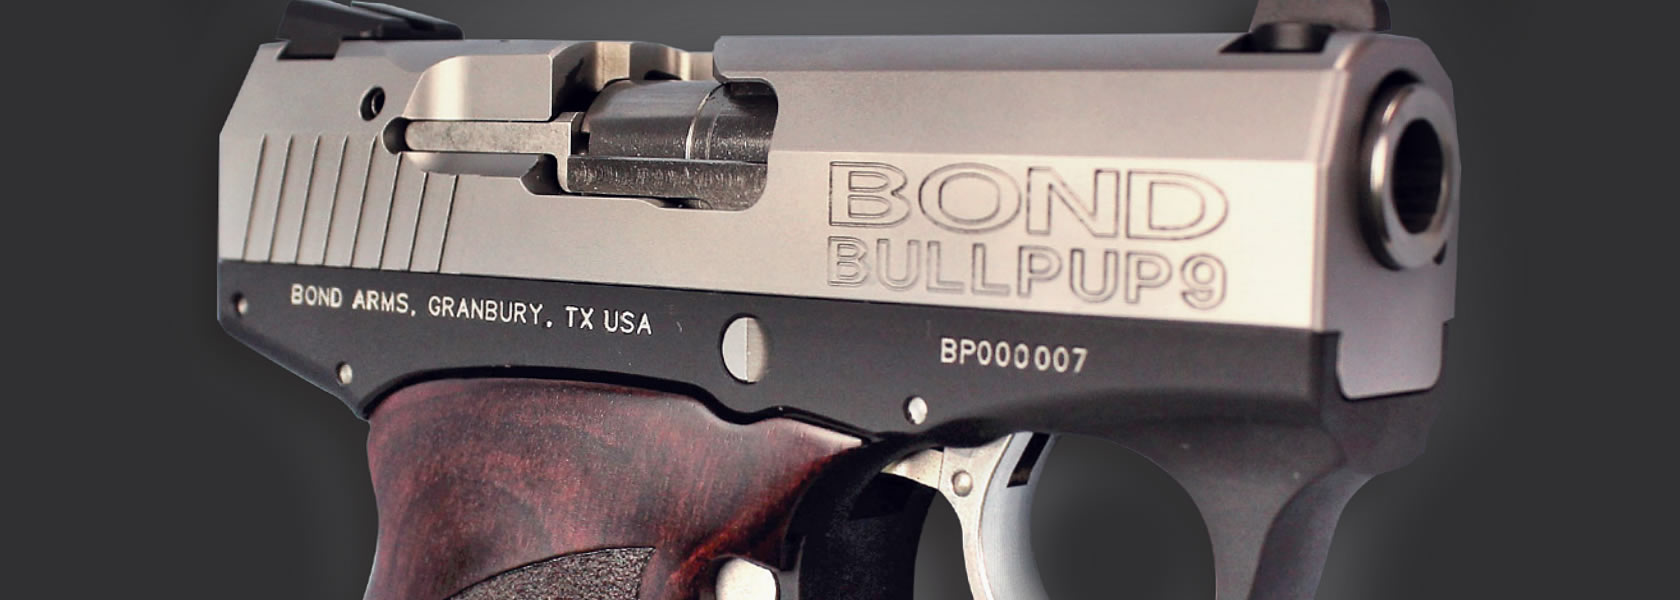 The Bond Arms Bullpup 9mm - Just A Pew Reviews